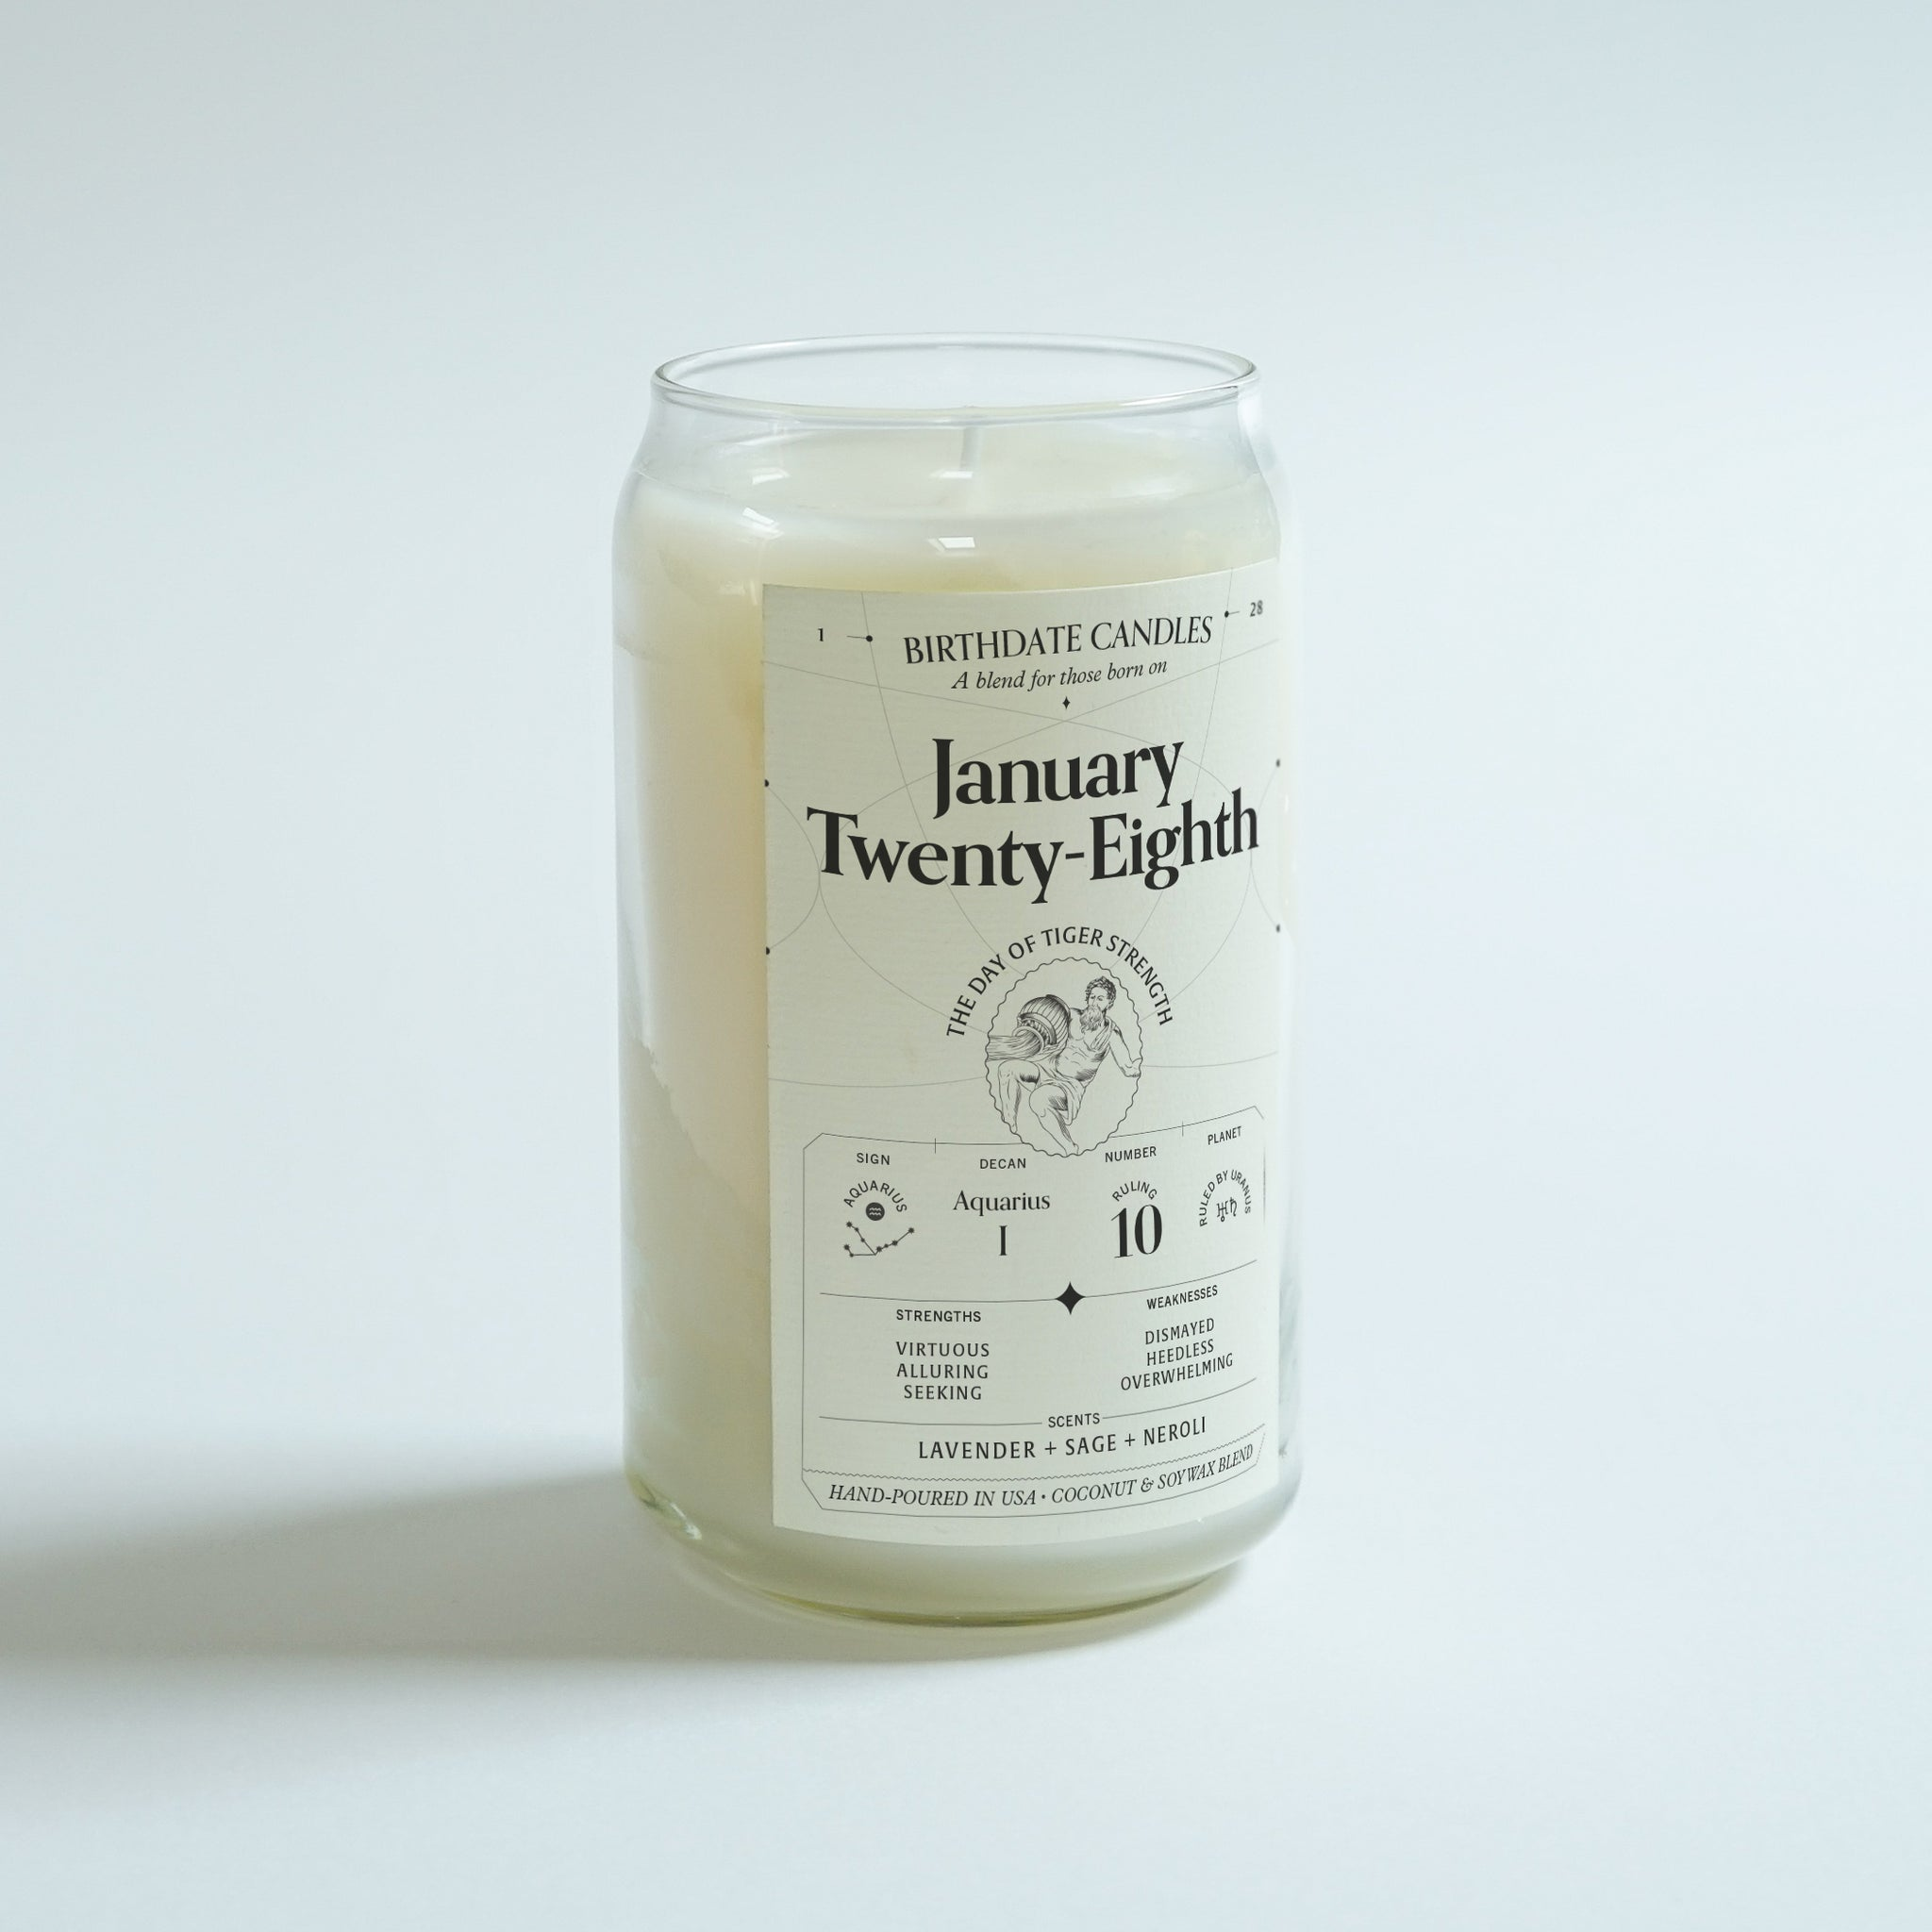 The January Twenty-Eighth Birthday Candle